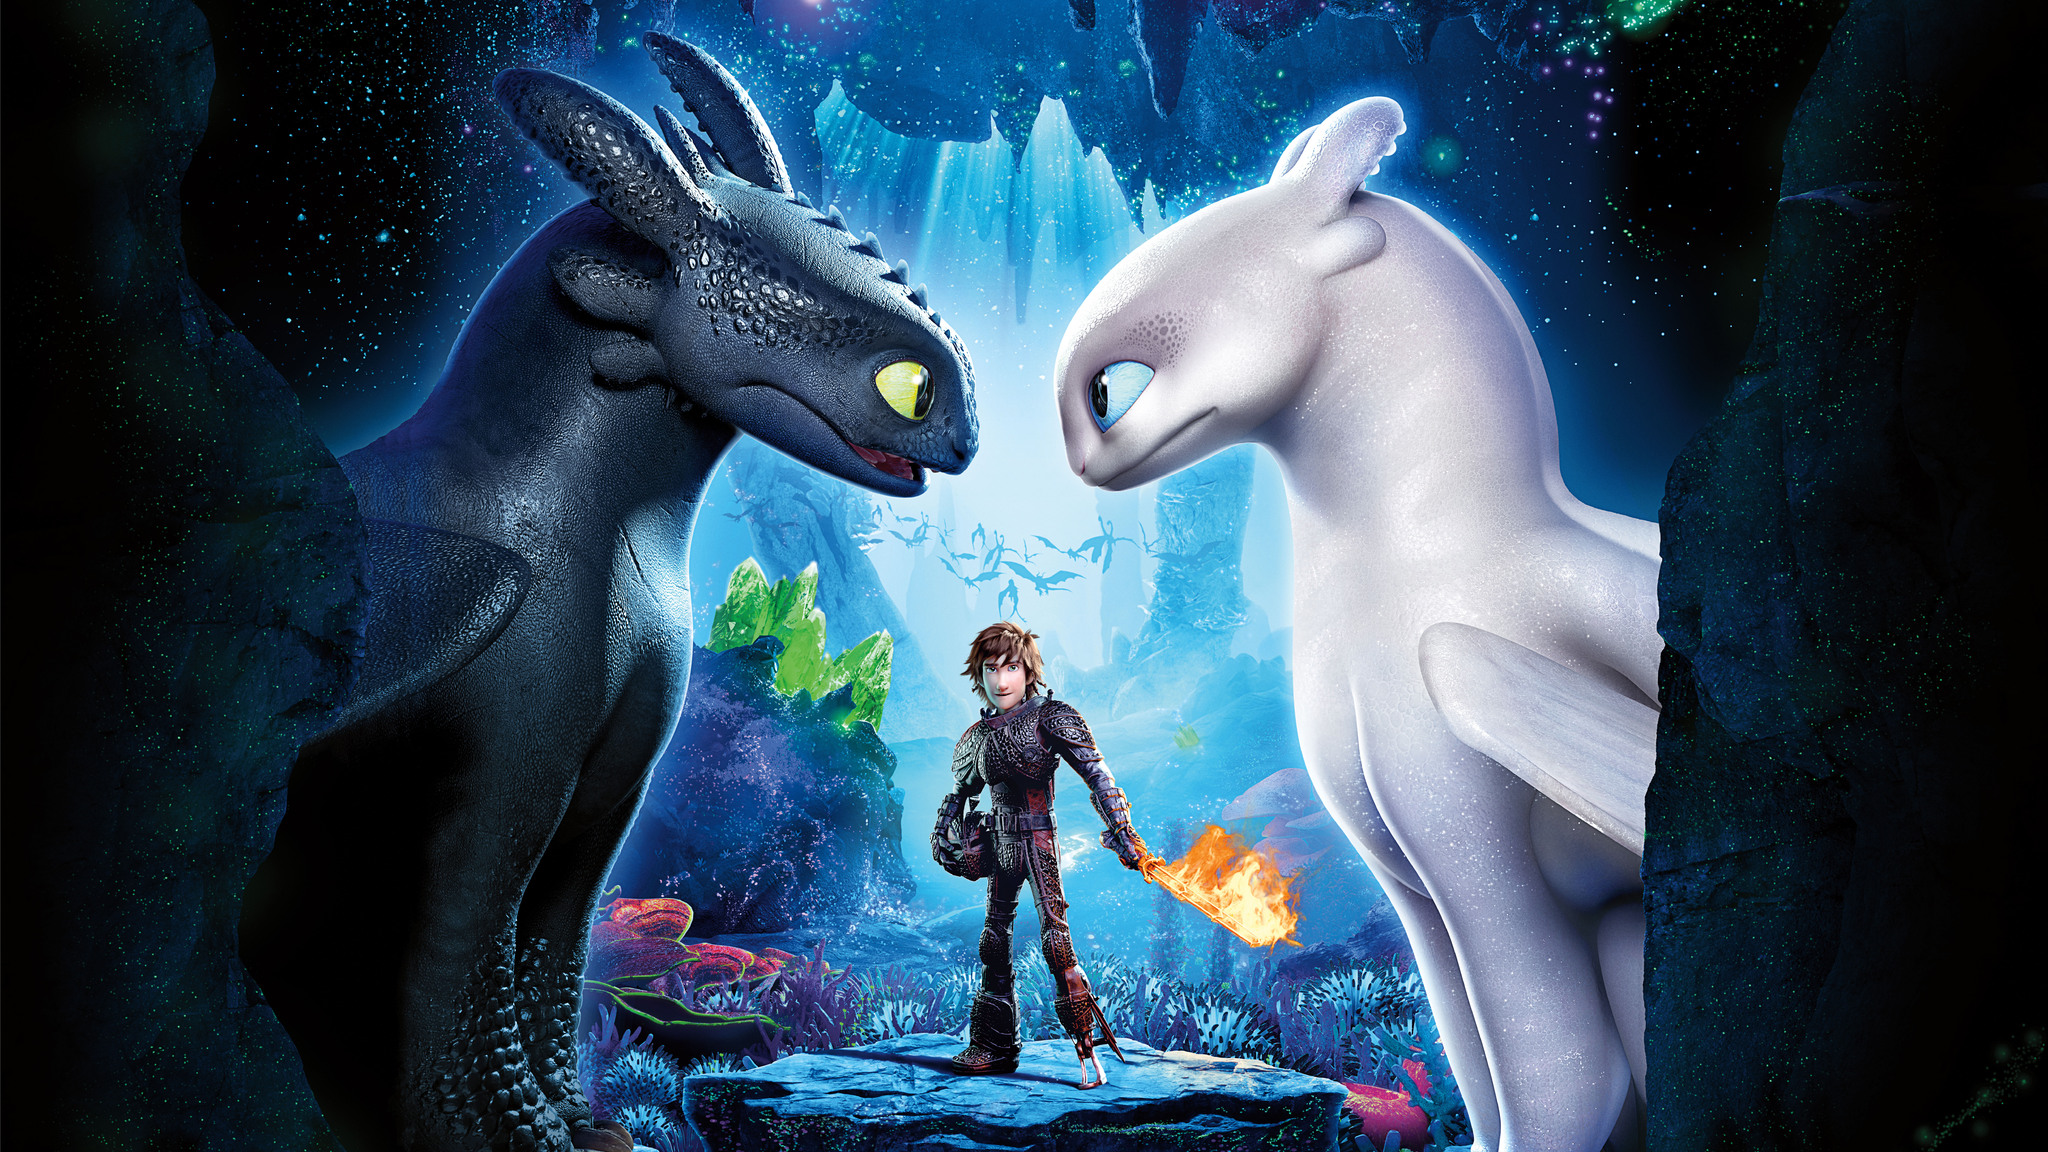 2048x1152 How To Train Your Dragon The Hidden World 10k ...